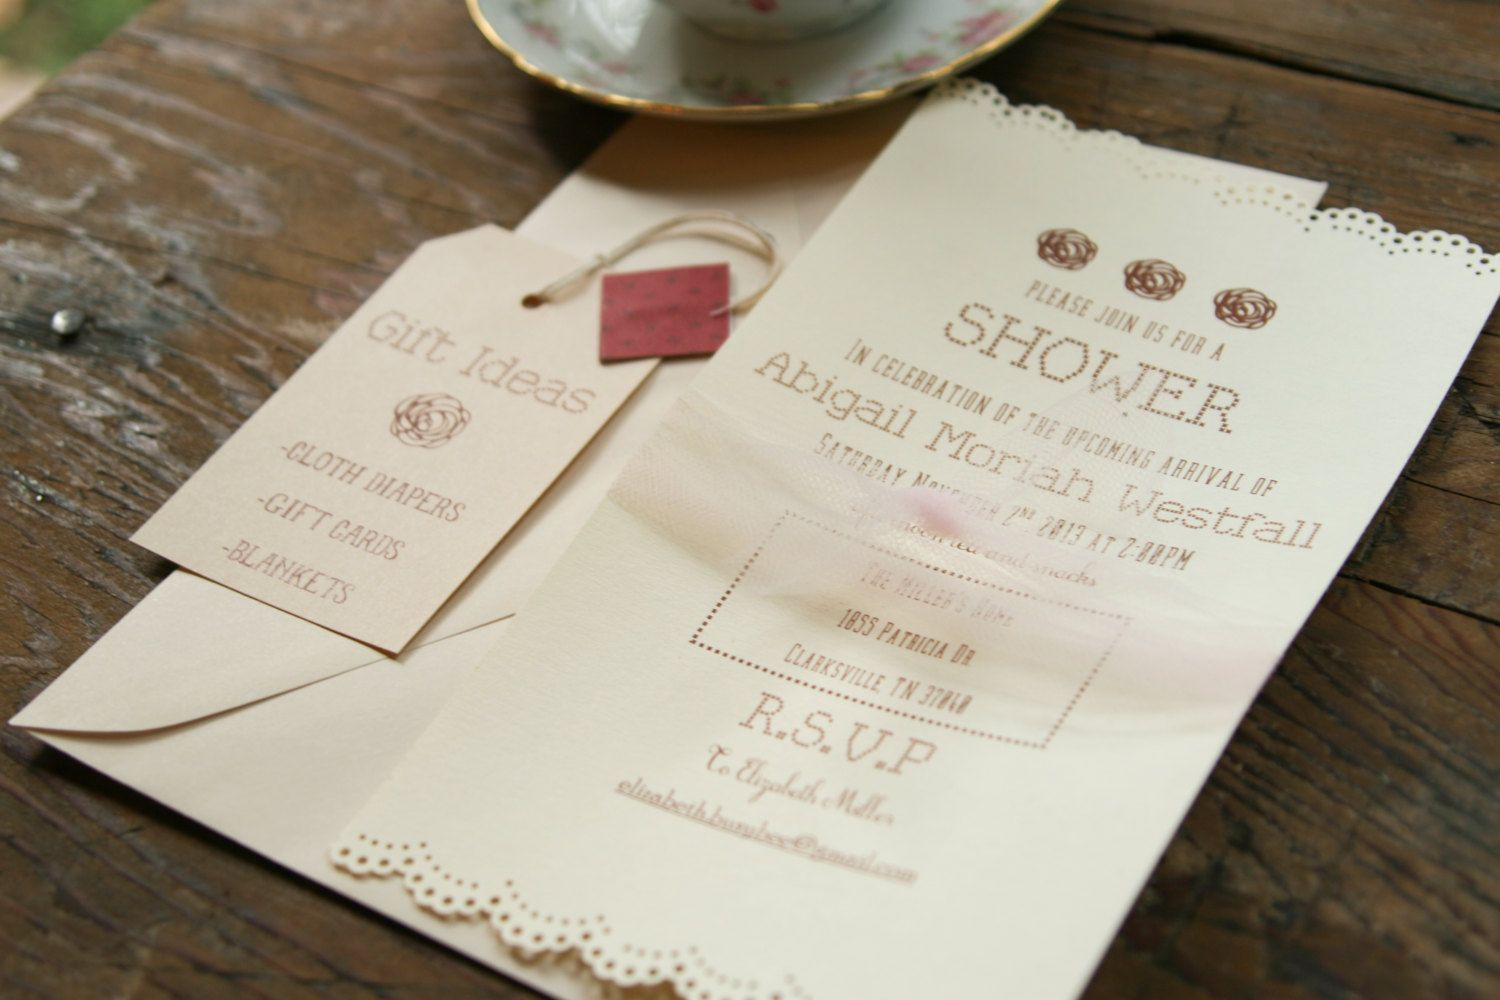 wedding shower invitations omaha%0A Baby shower Bridal shower tea party invitation by ameasuredgift          i  n v i t e d   Pinterest   Bridal shower tea  Tea party invitations and Tea